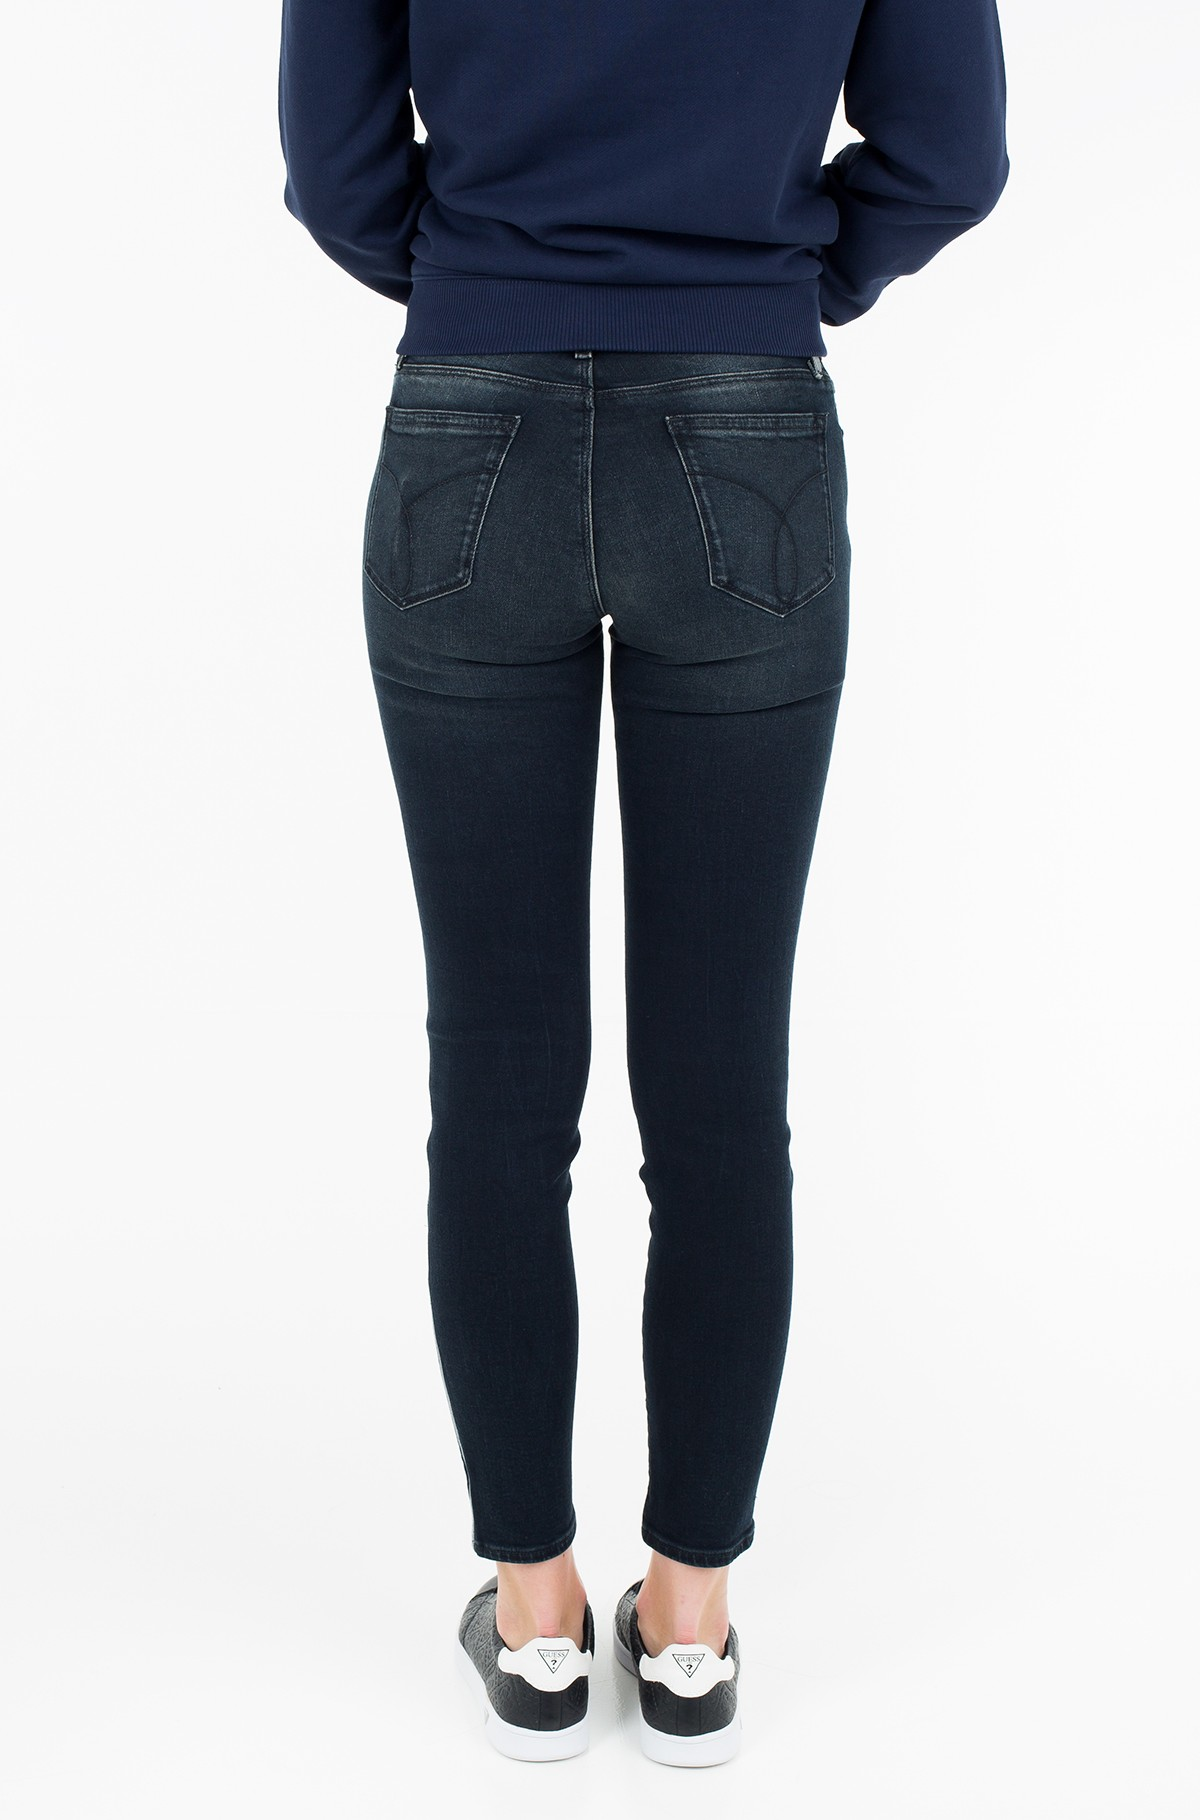 Jeans Mid Rise Skinny Ankle - Blackwater Embro-full-2